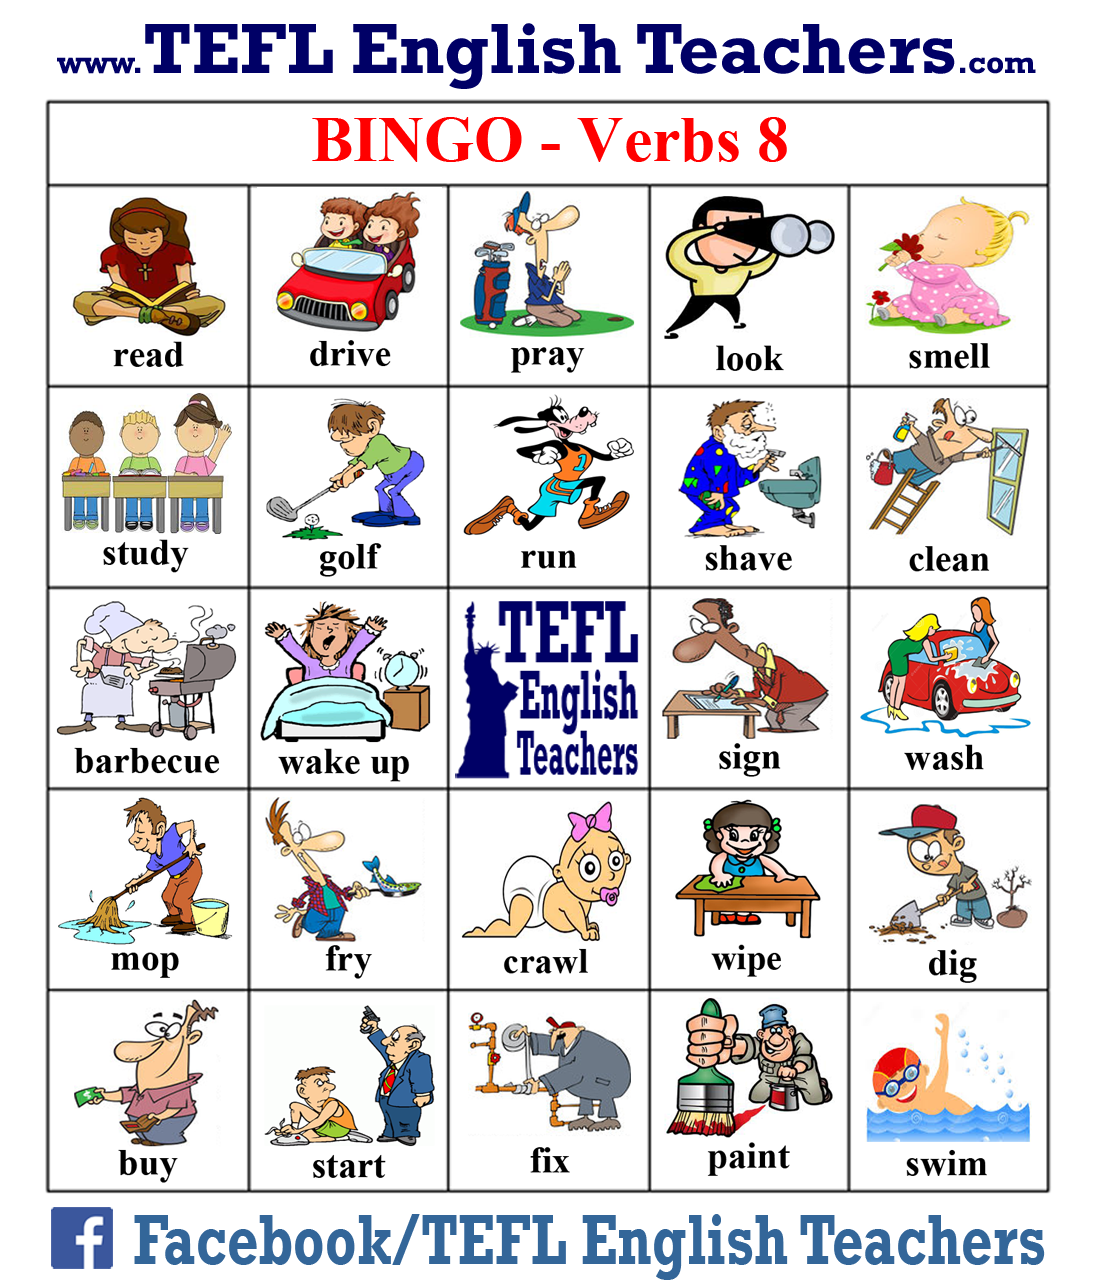 Tefl English Teachers Bingo Verbs Game Board 8 Of 20 Juegos En Ingles Vocabulario En Ingles Loteria En Ingles